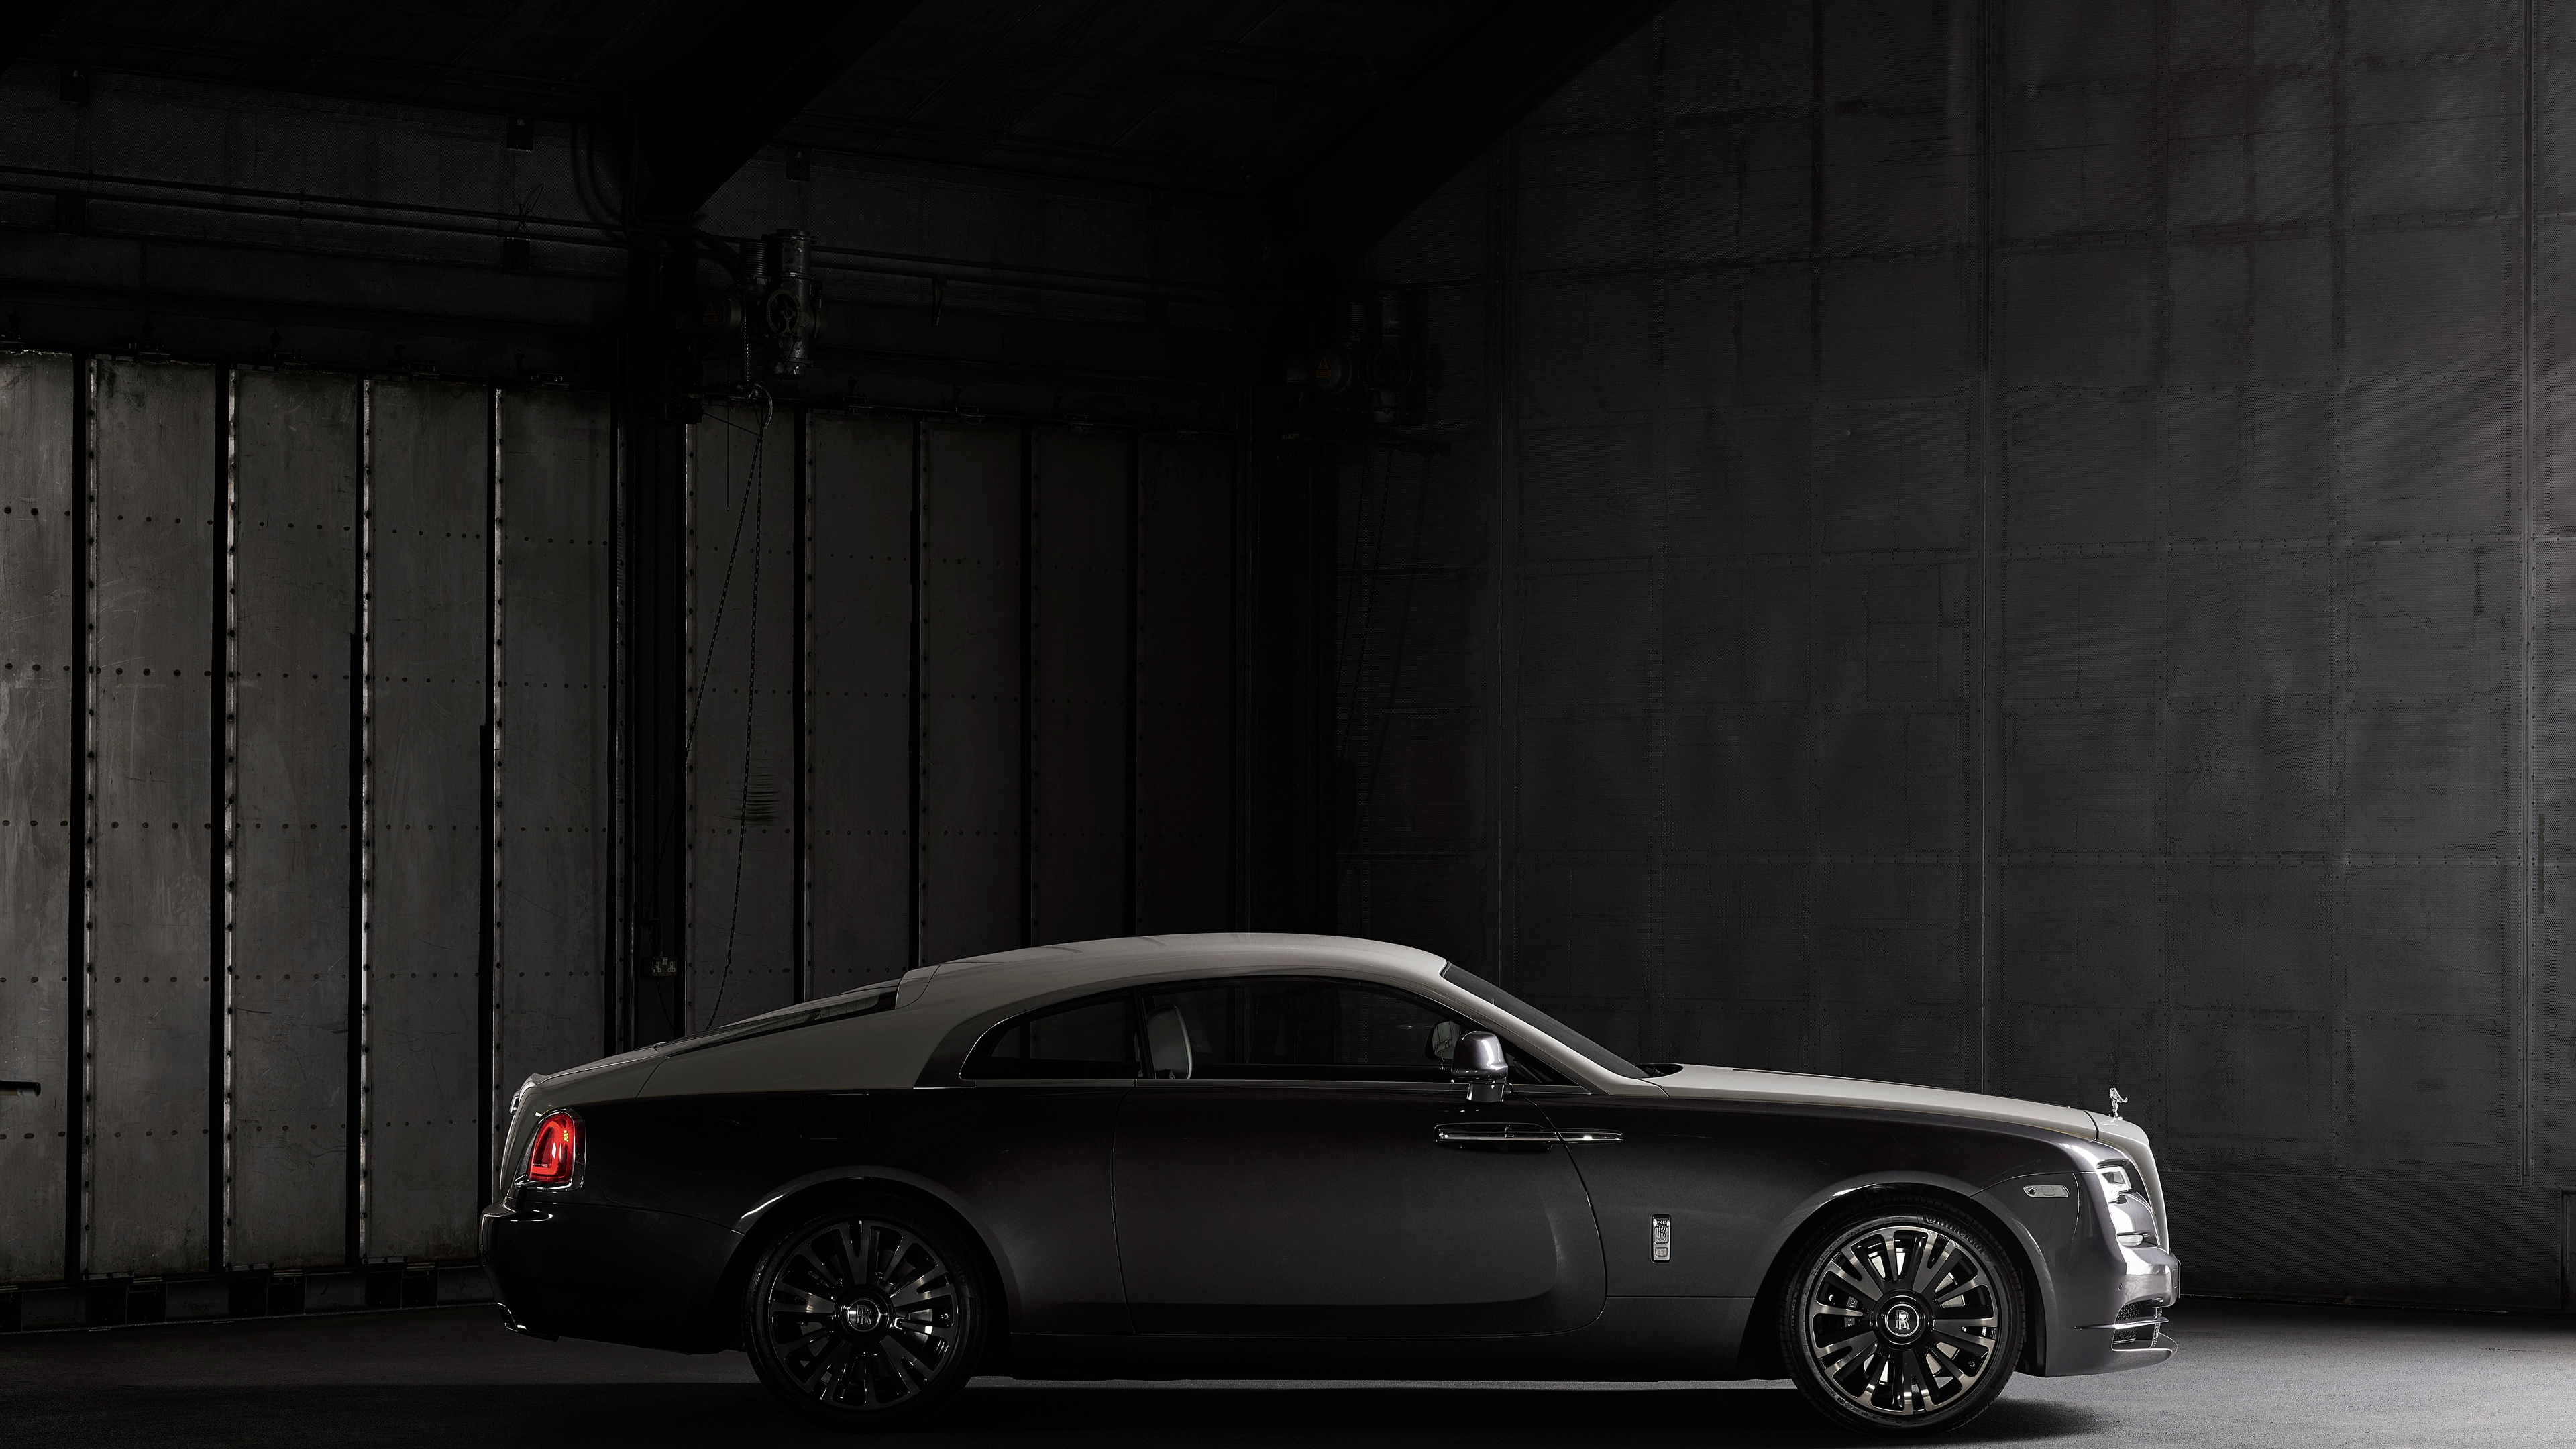 rolls royce wraith eagle viii 2019 1560534253 - Rolls Royce Wraith Eagle VIII 2019 - rolls royce wraith wallpapers, rolls royce wallpapers, hd-wallpapers, cars wallpapers, 4k-wallpapers, 2019 cars wallpapers